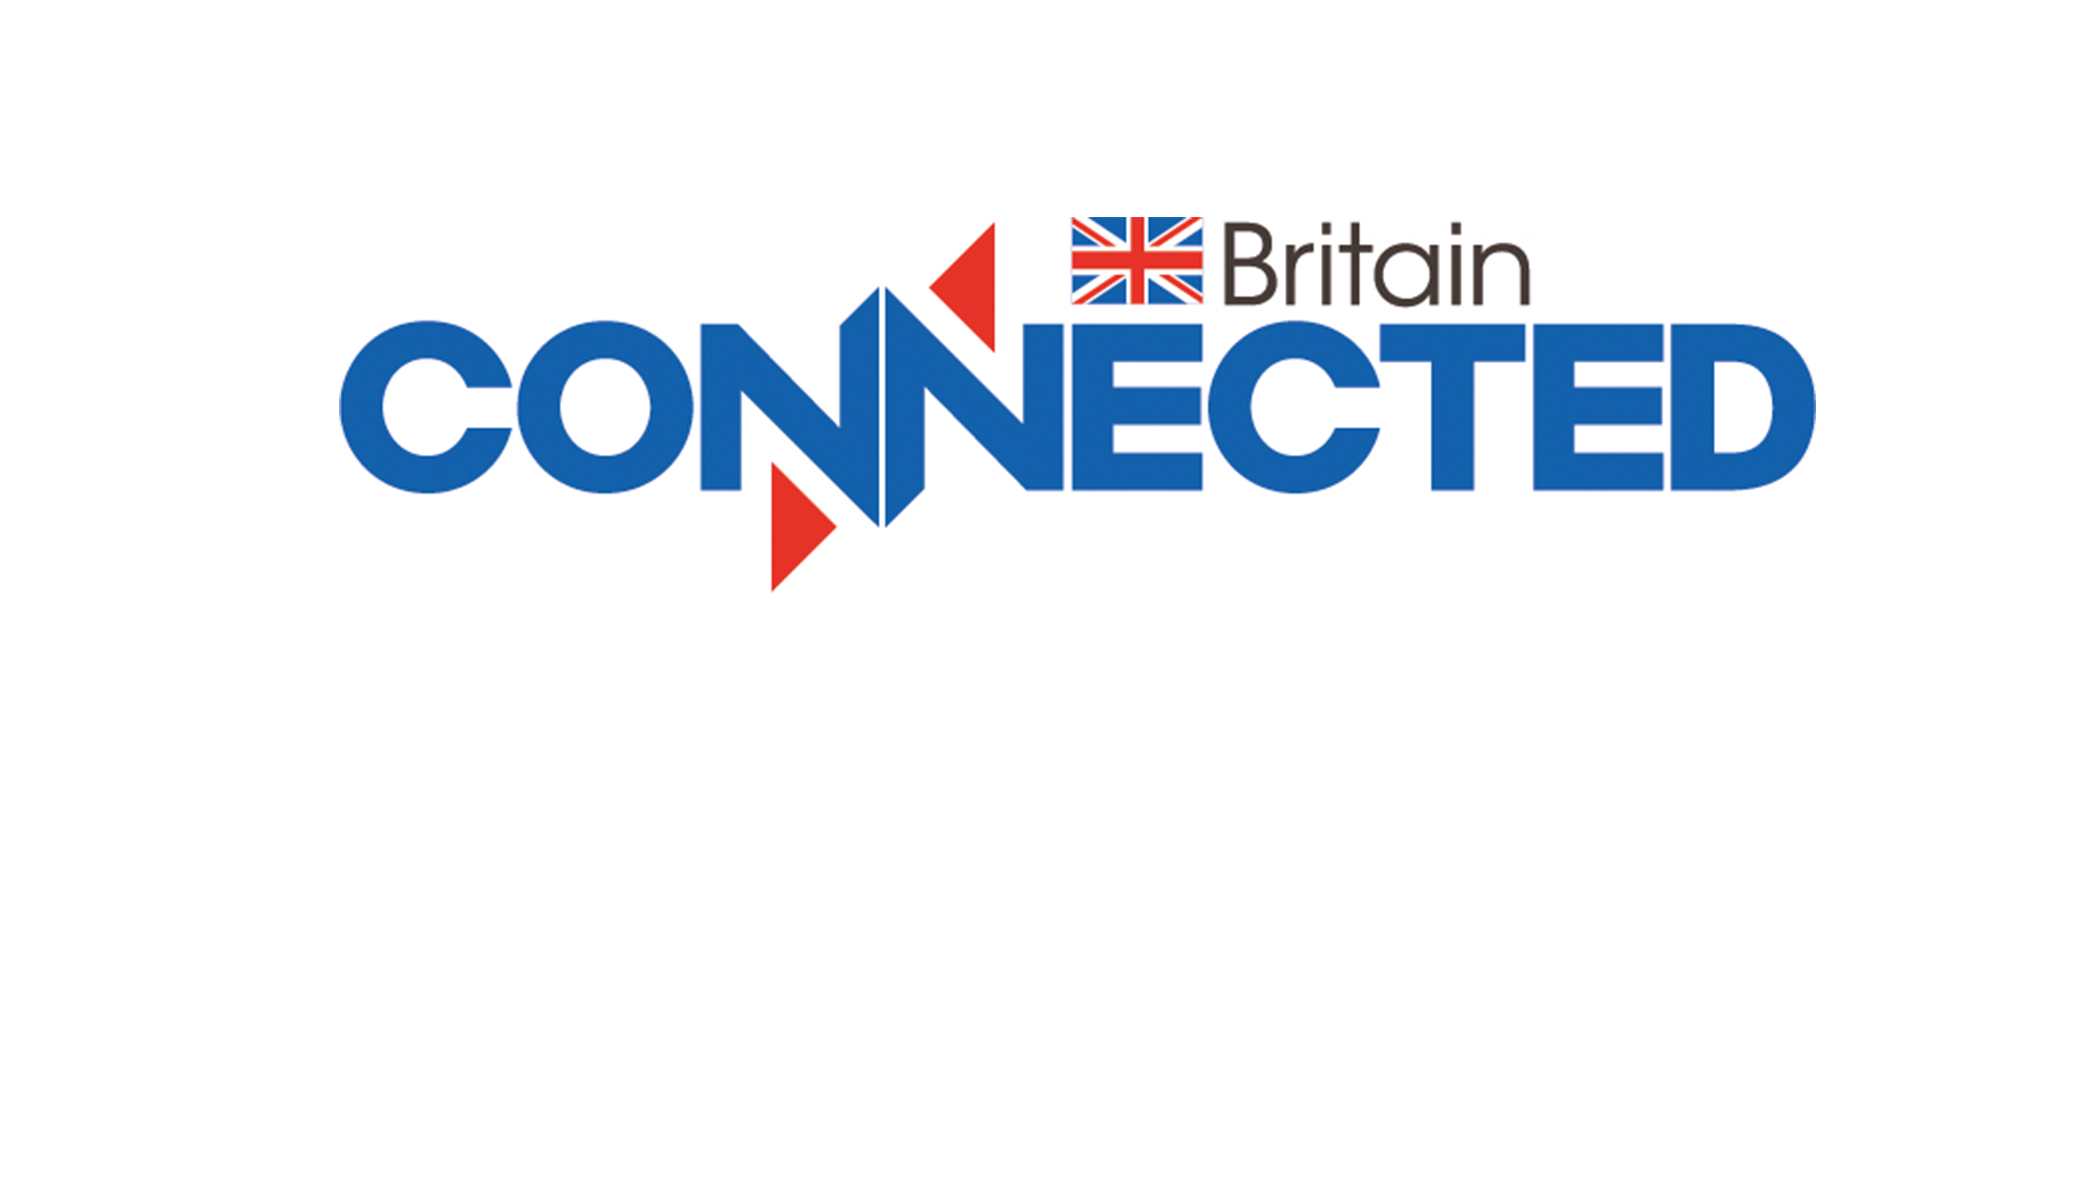 Pix4D at Connected Britain 2020